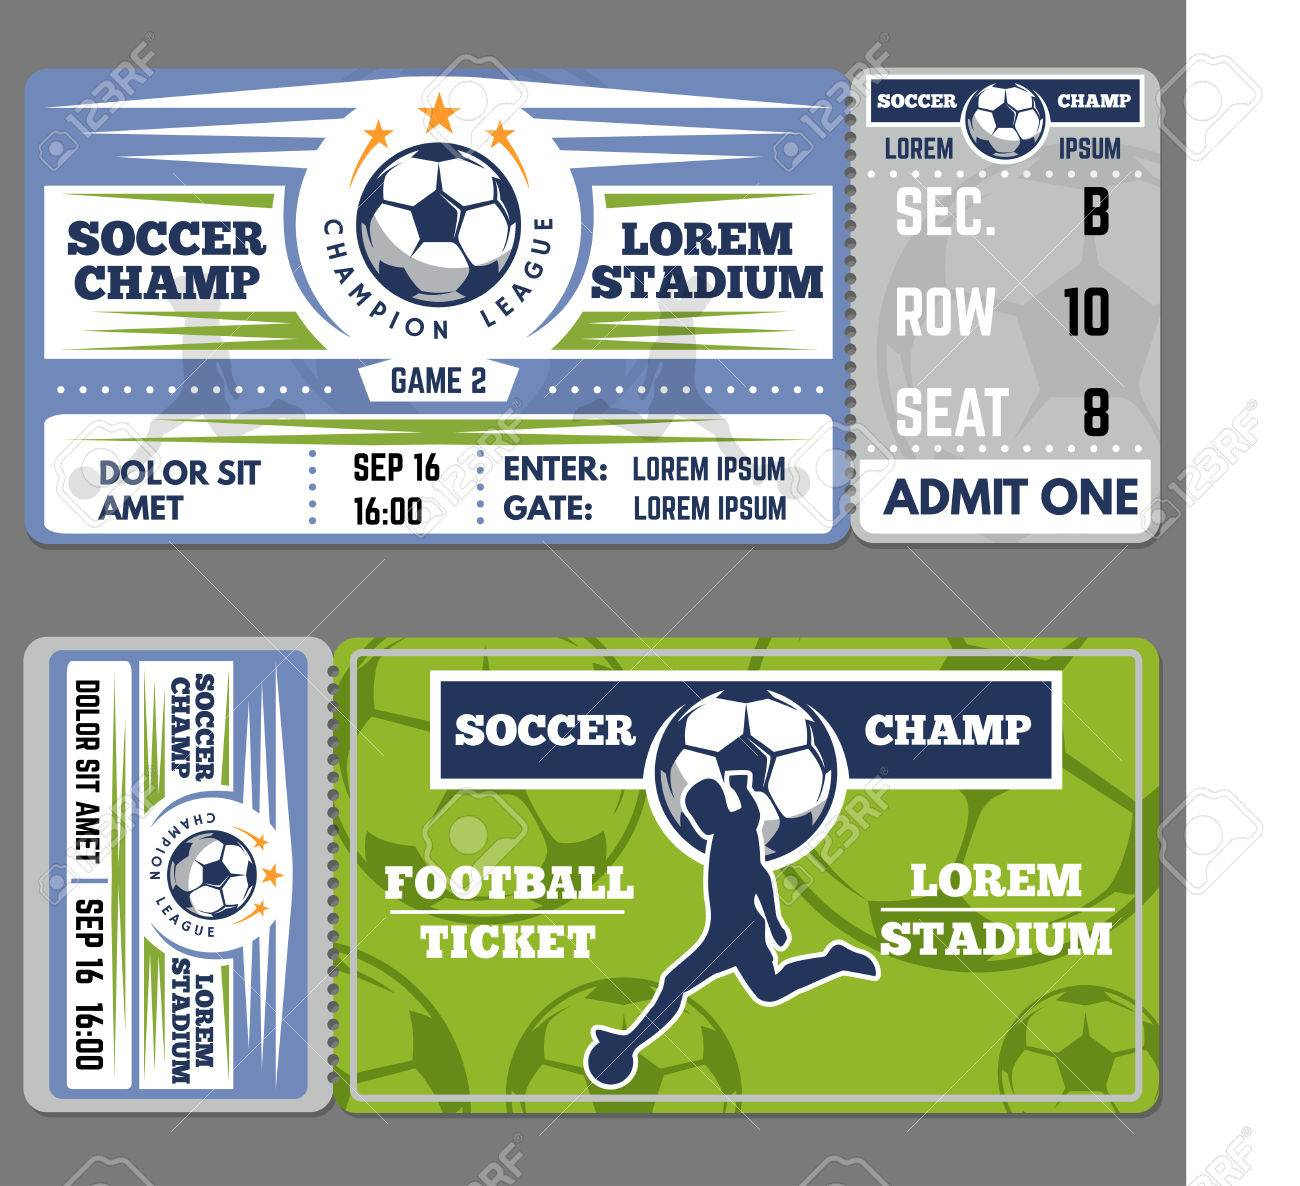 Football Ticket Template Design. Coupon For Soccer Sporting Event ...